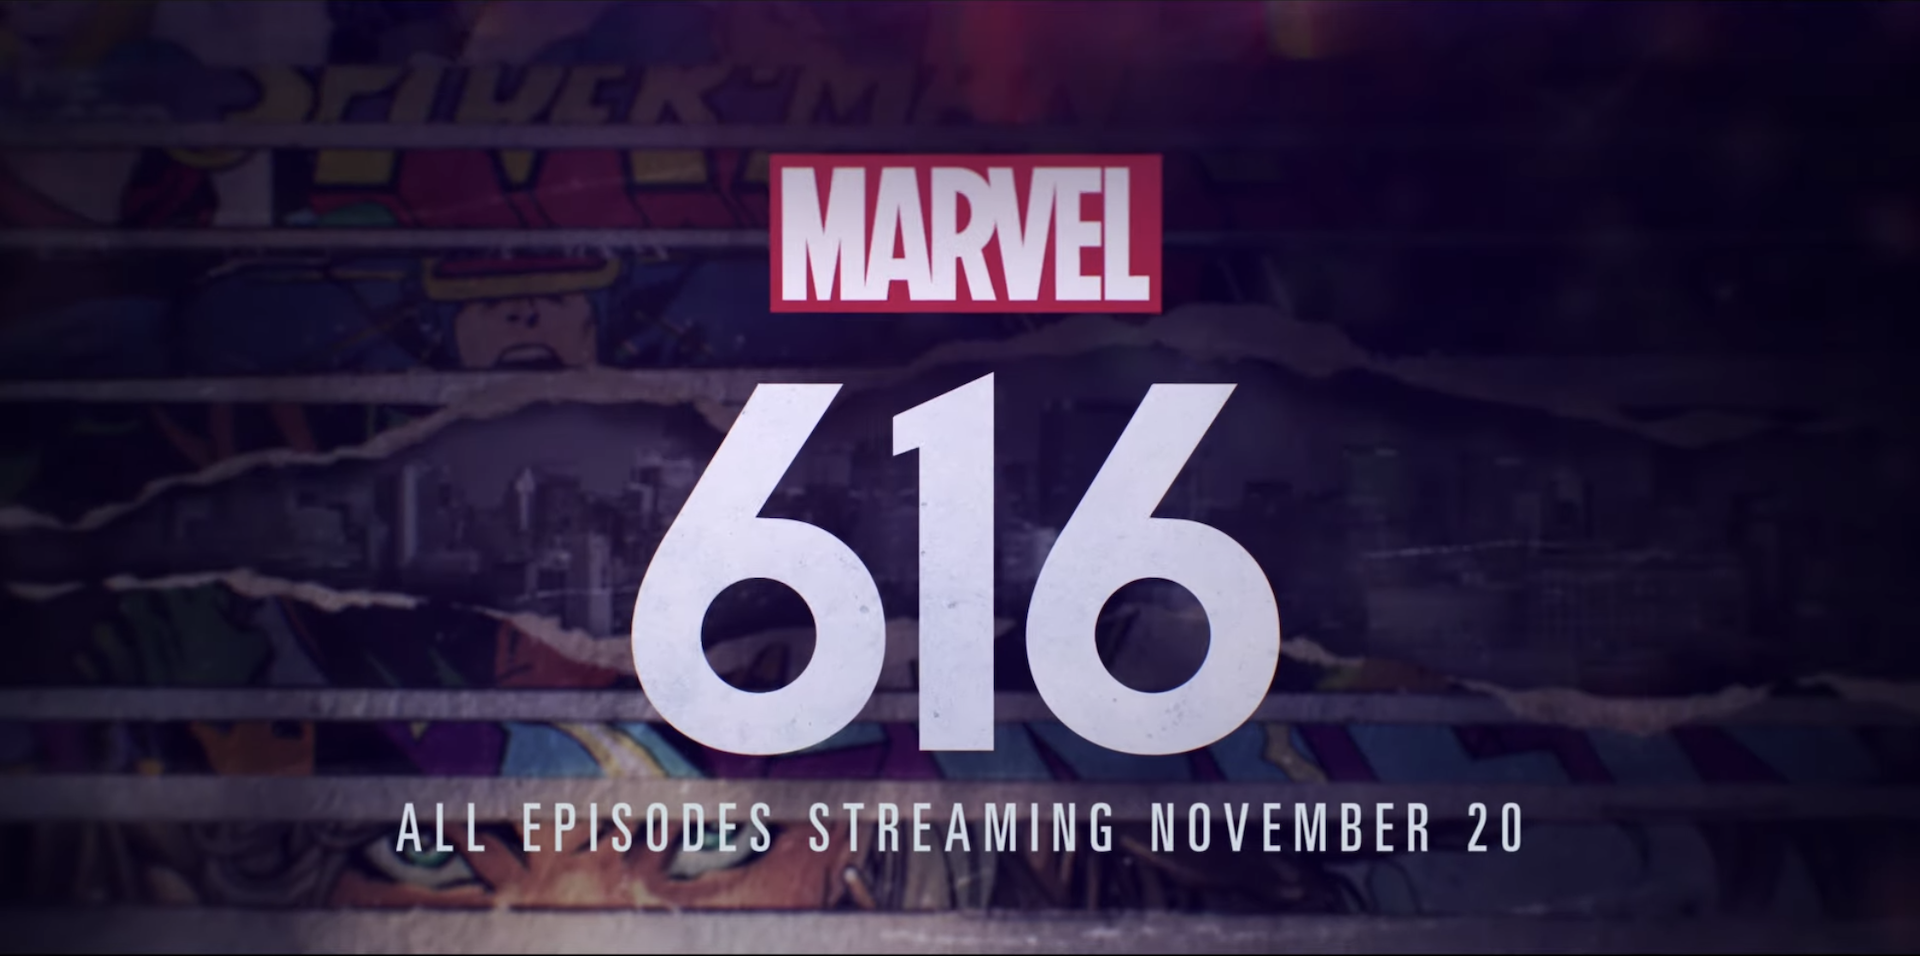 Disney+ launches 'Marvel's 616' trailer and episode details